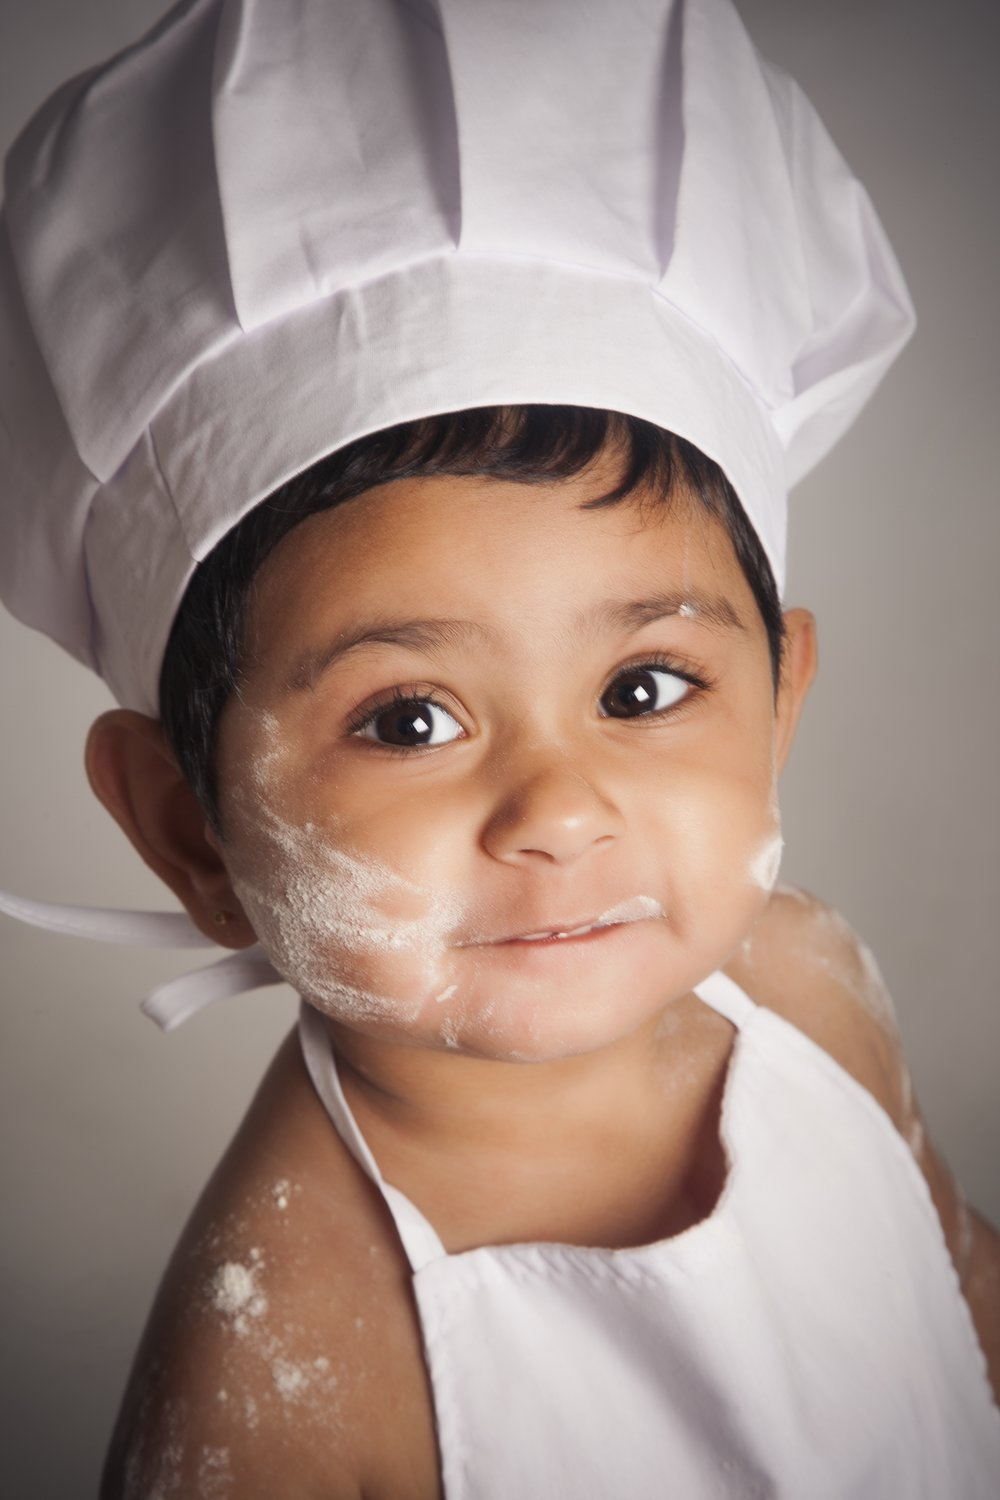 zigzag-photography-leicester-zig-zag-photographers-photo-studio-clarendon-park-queens-road-best-family-portraits-children-cook-baking-chef-dress-ip-outfit-ideas-props-flour-apron.jpg